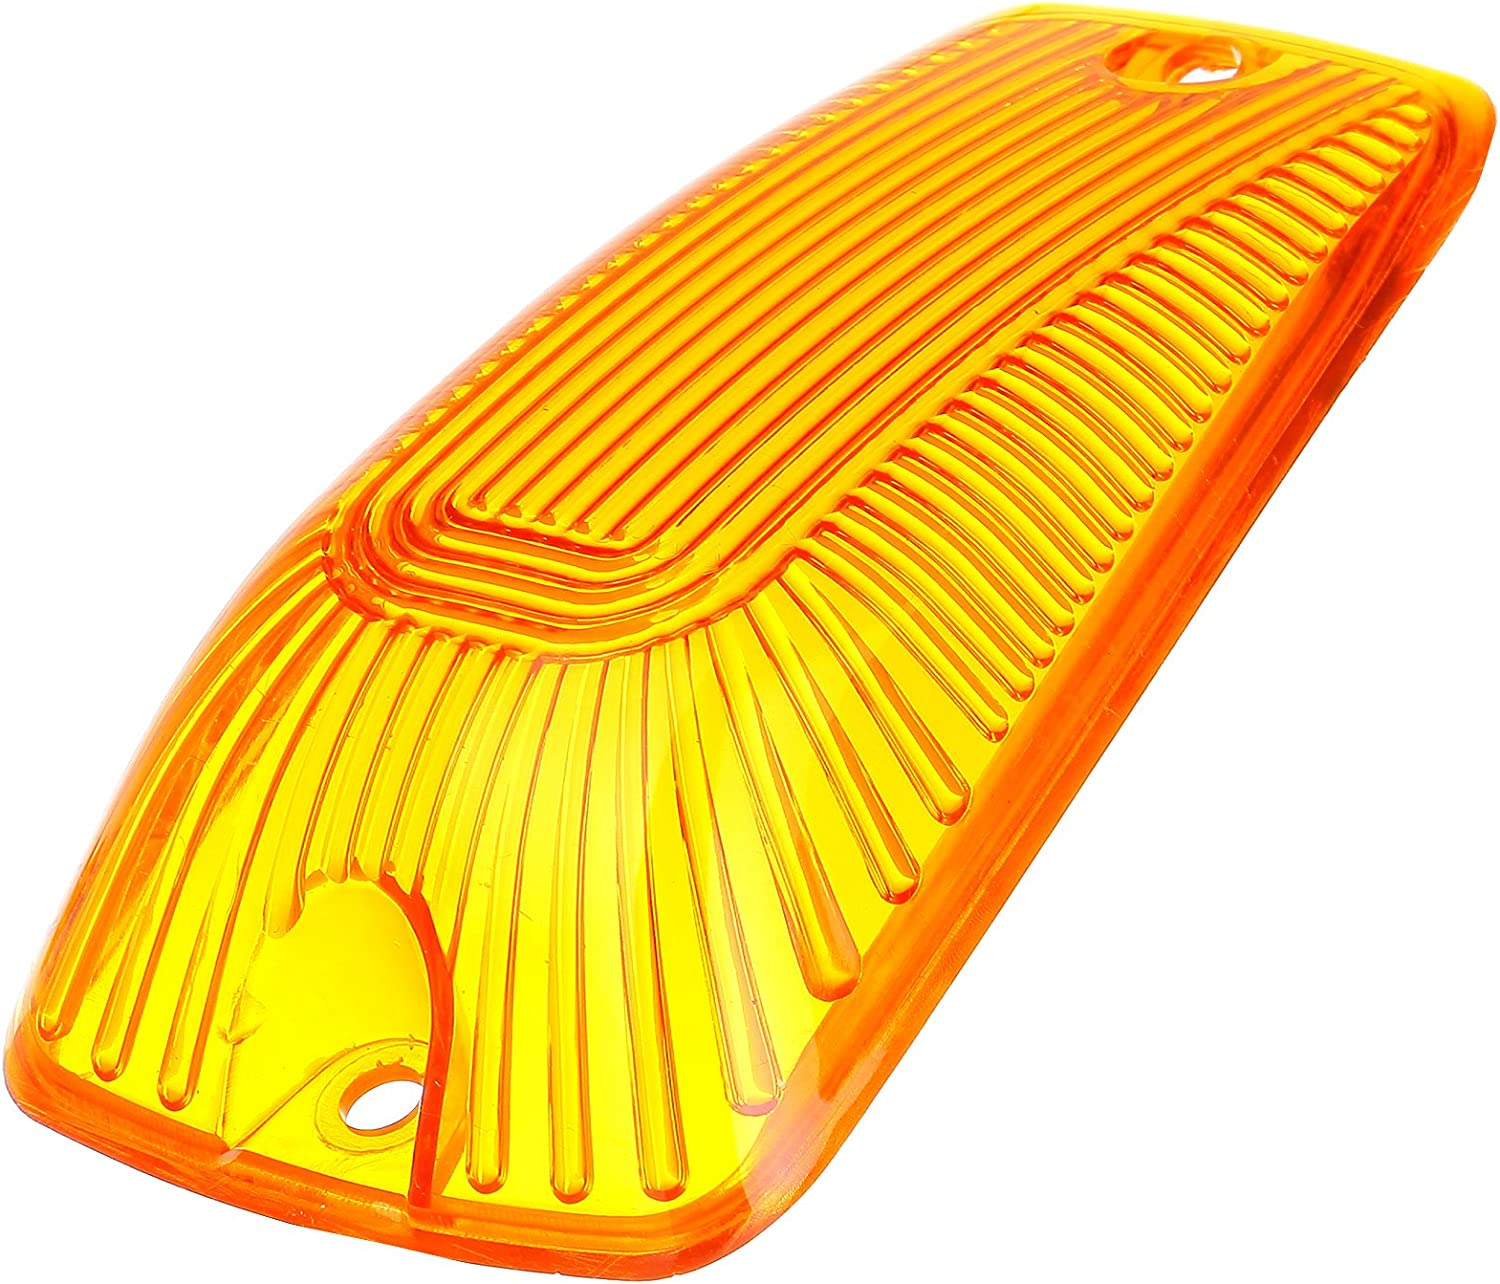 Wiring pack Replacement fit for 1988-2000 GMC C//K cciyu 5 Pack Amber Top Cab Roof Running Light Marker Lens with Base Housing 5x 6-5730SMD White Led Light